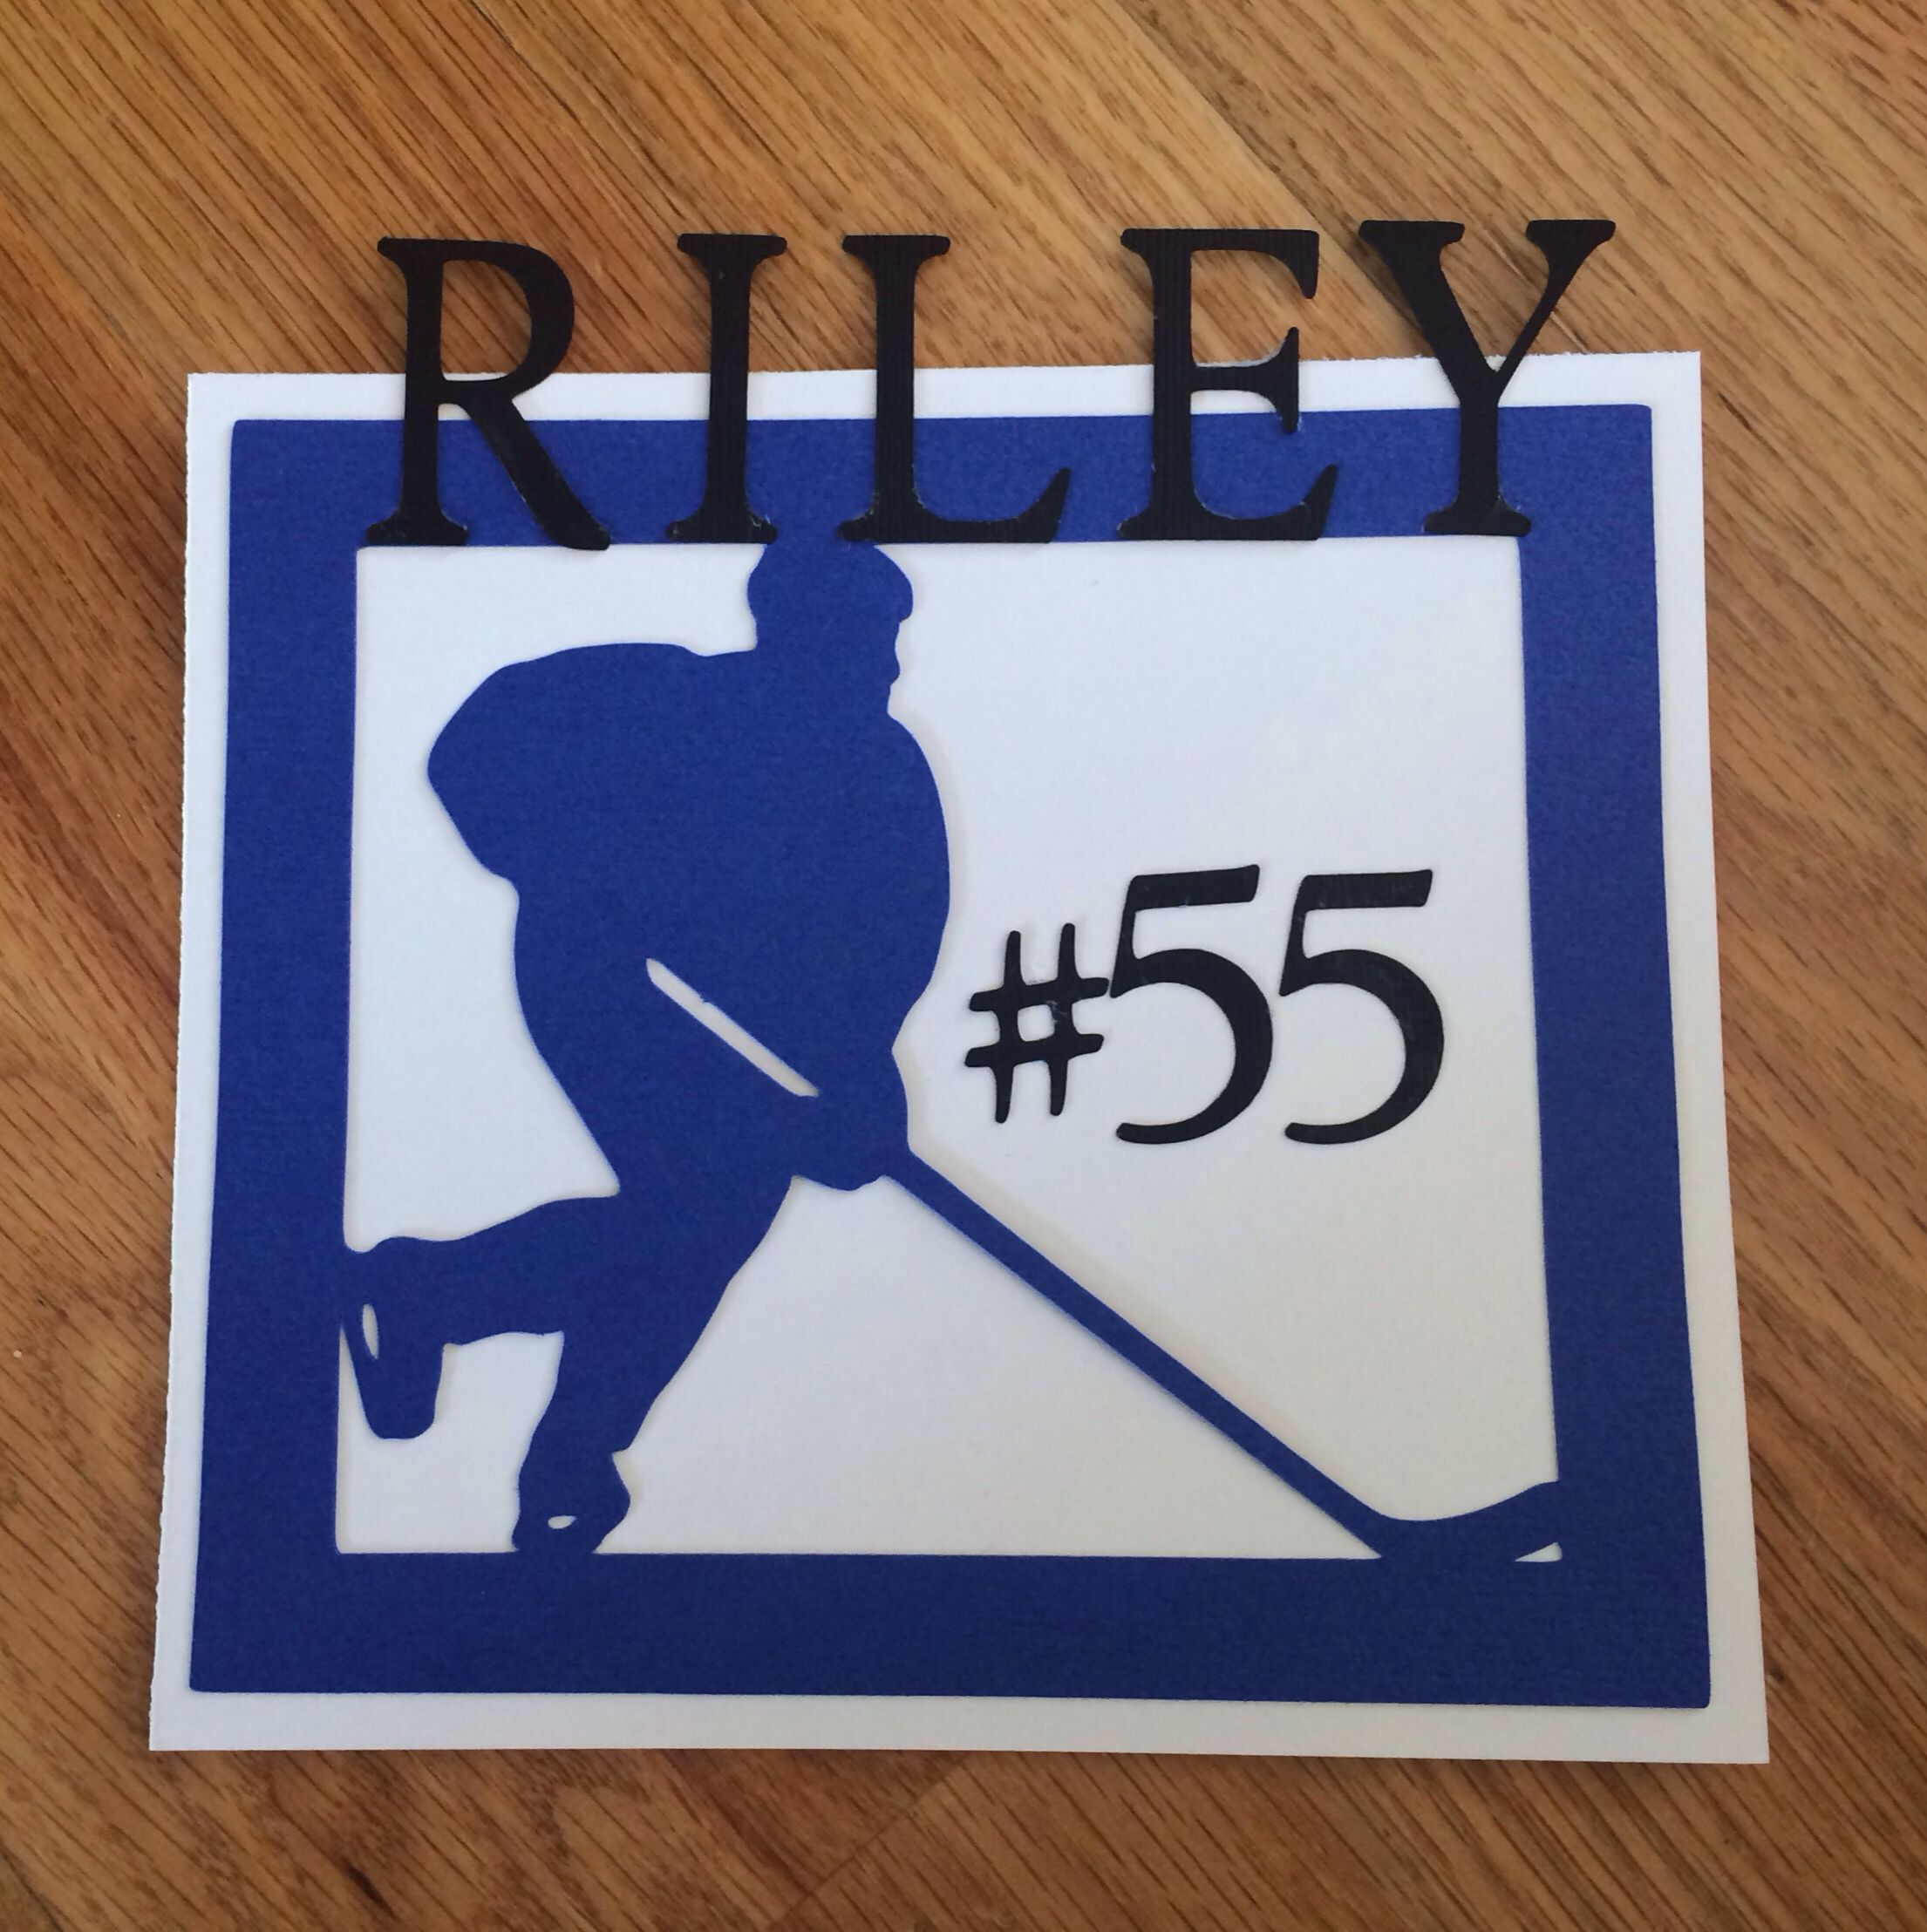 hockey themed hotel door signs i made for our out of town tournament go dodge